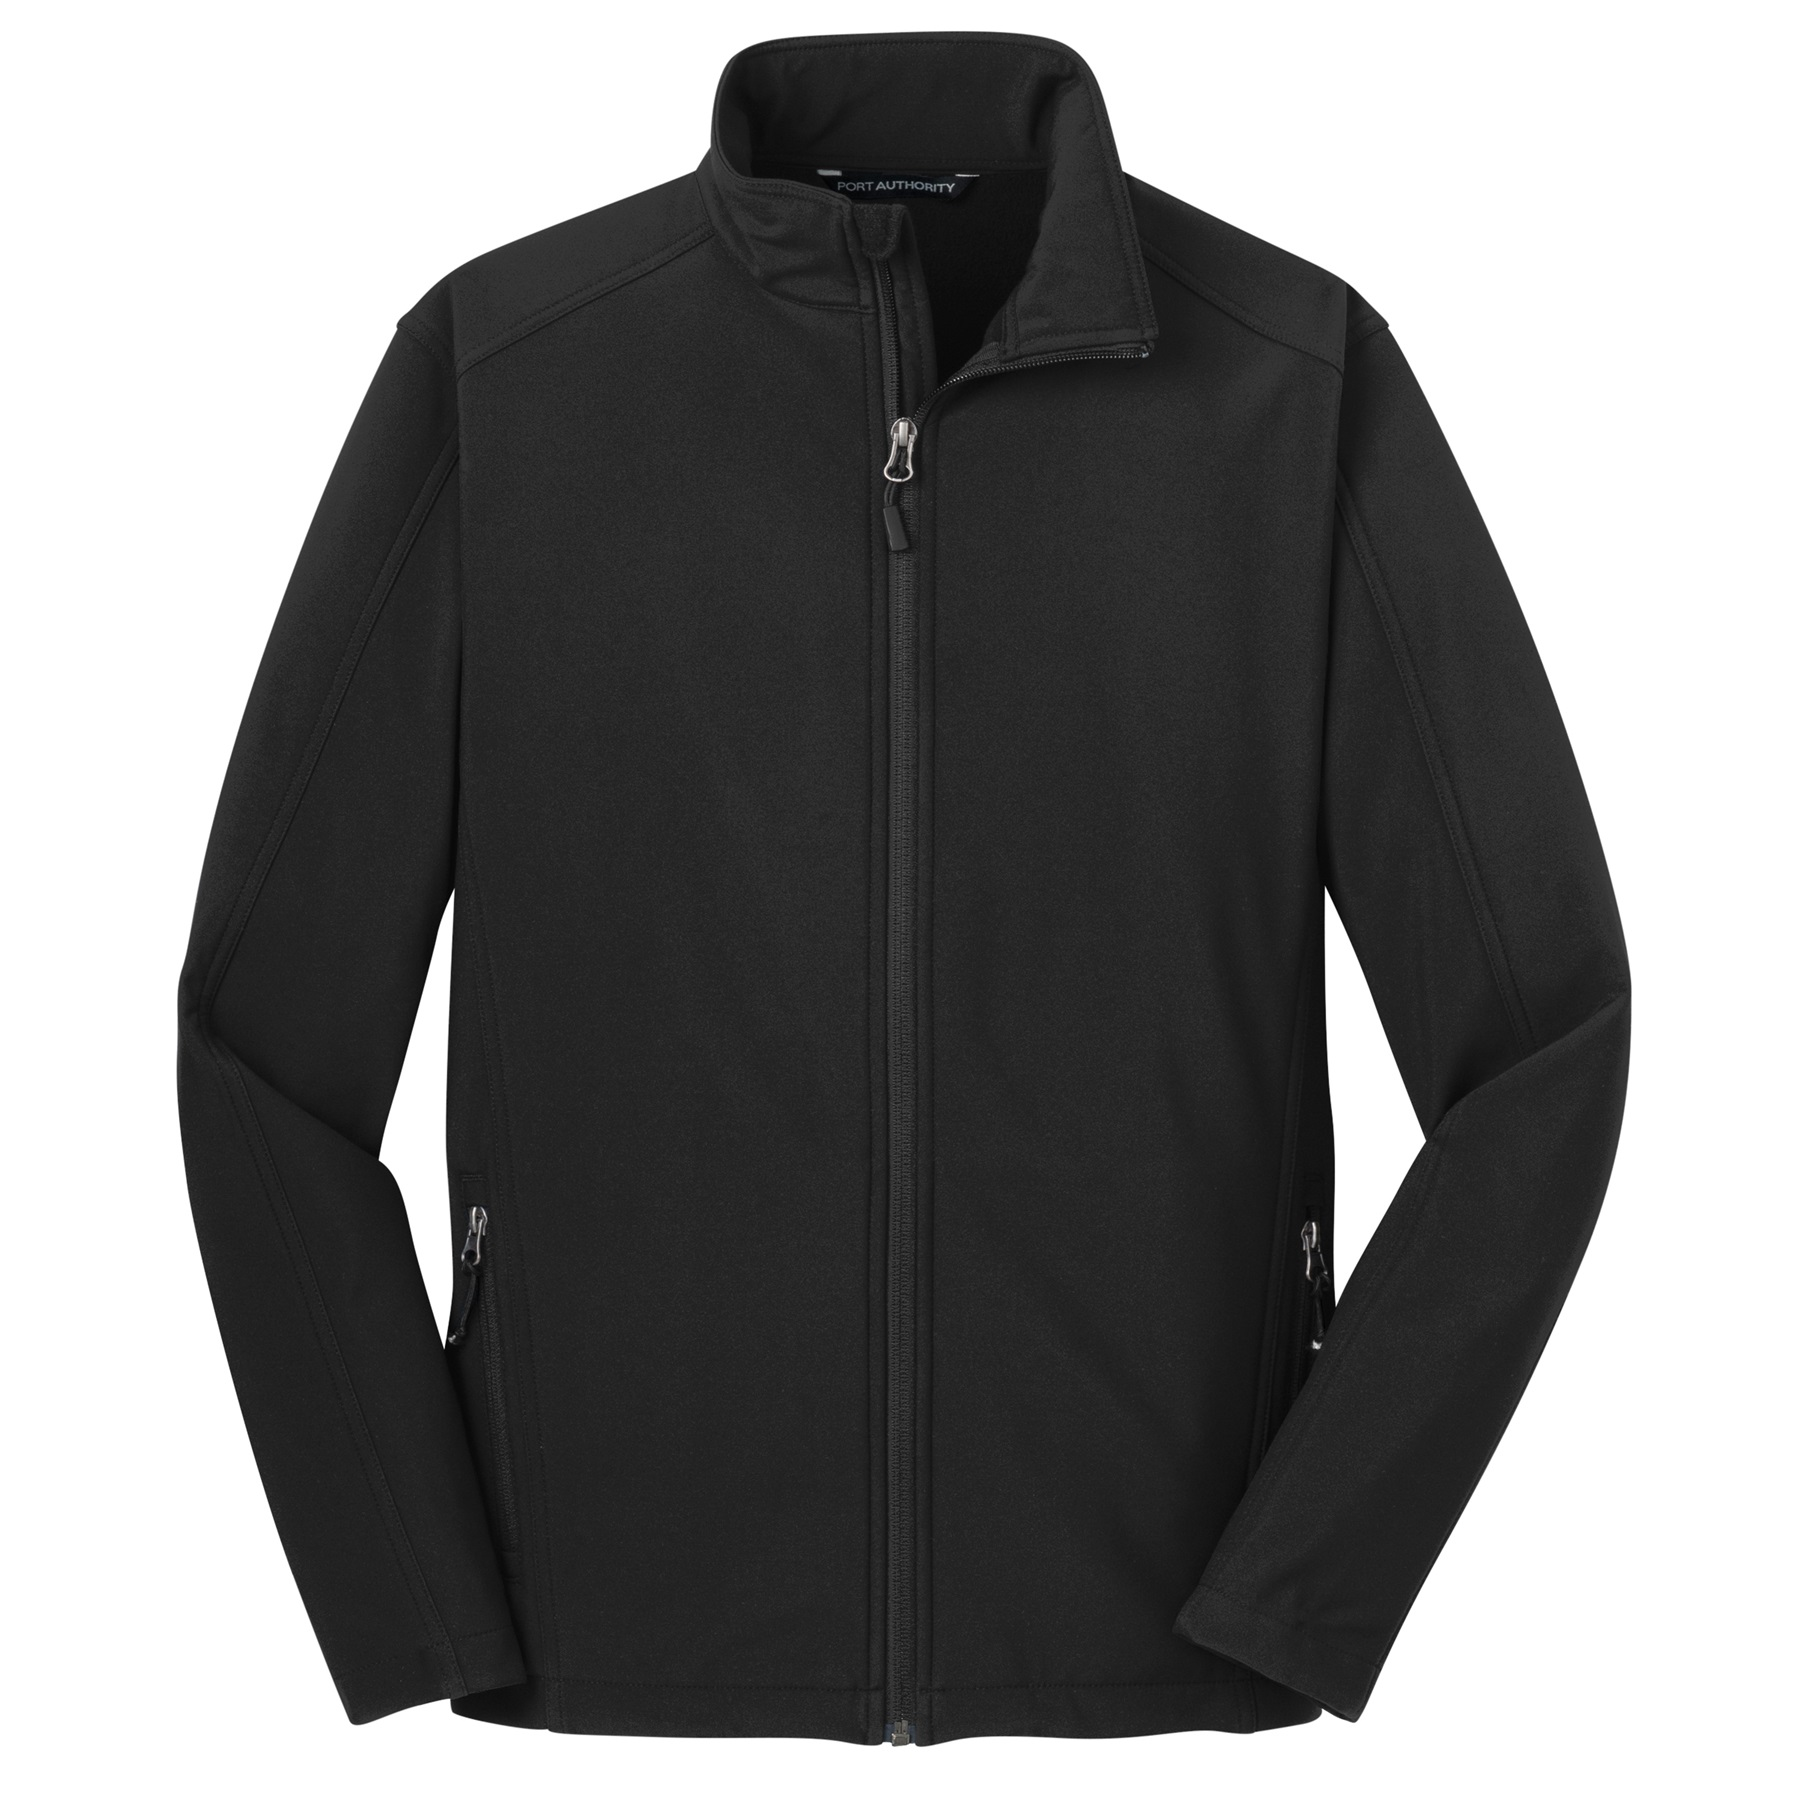 Soft-Shell Jackets: Shop Brands up to 75% | Stylight10,+ followers on Twitter.